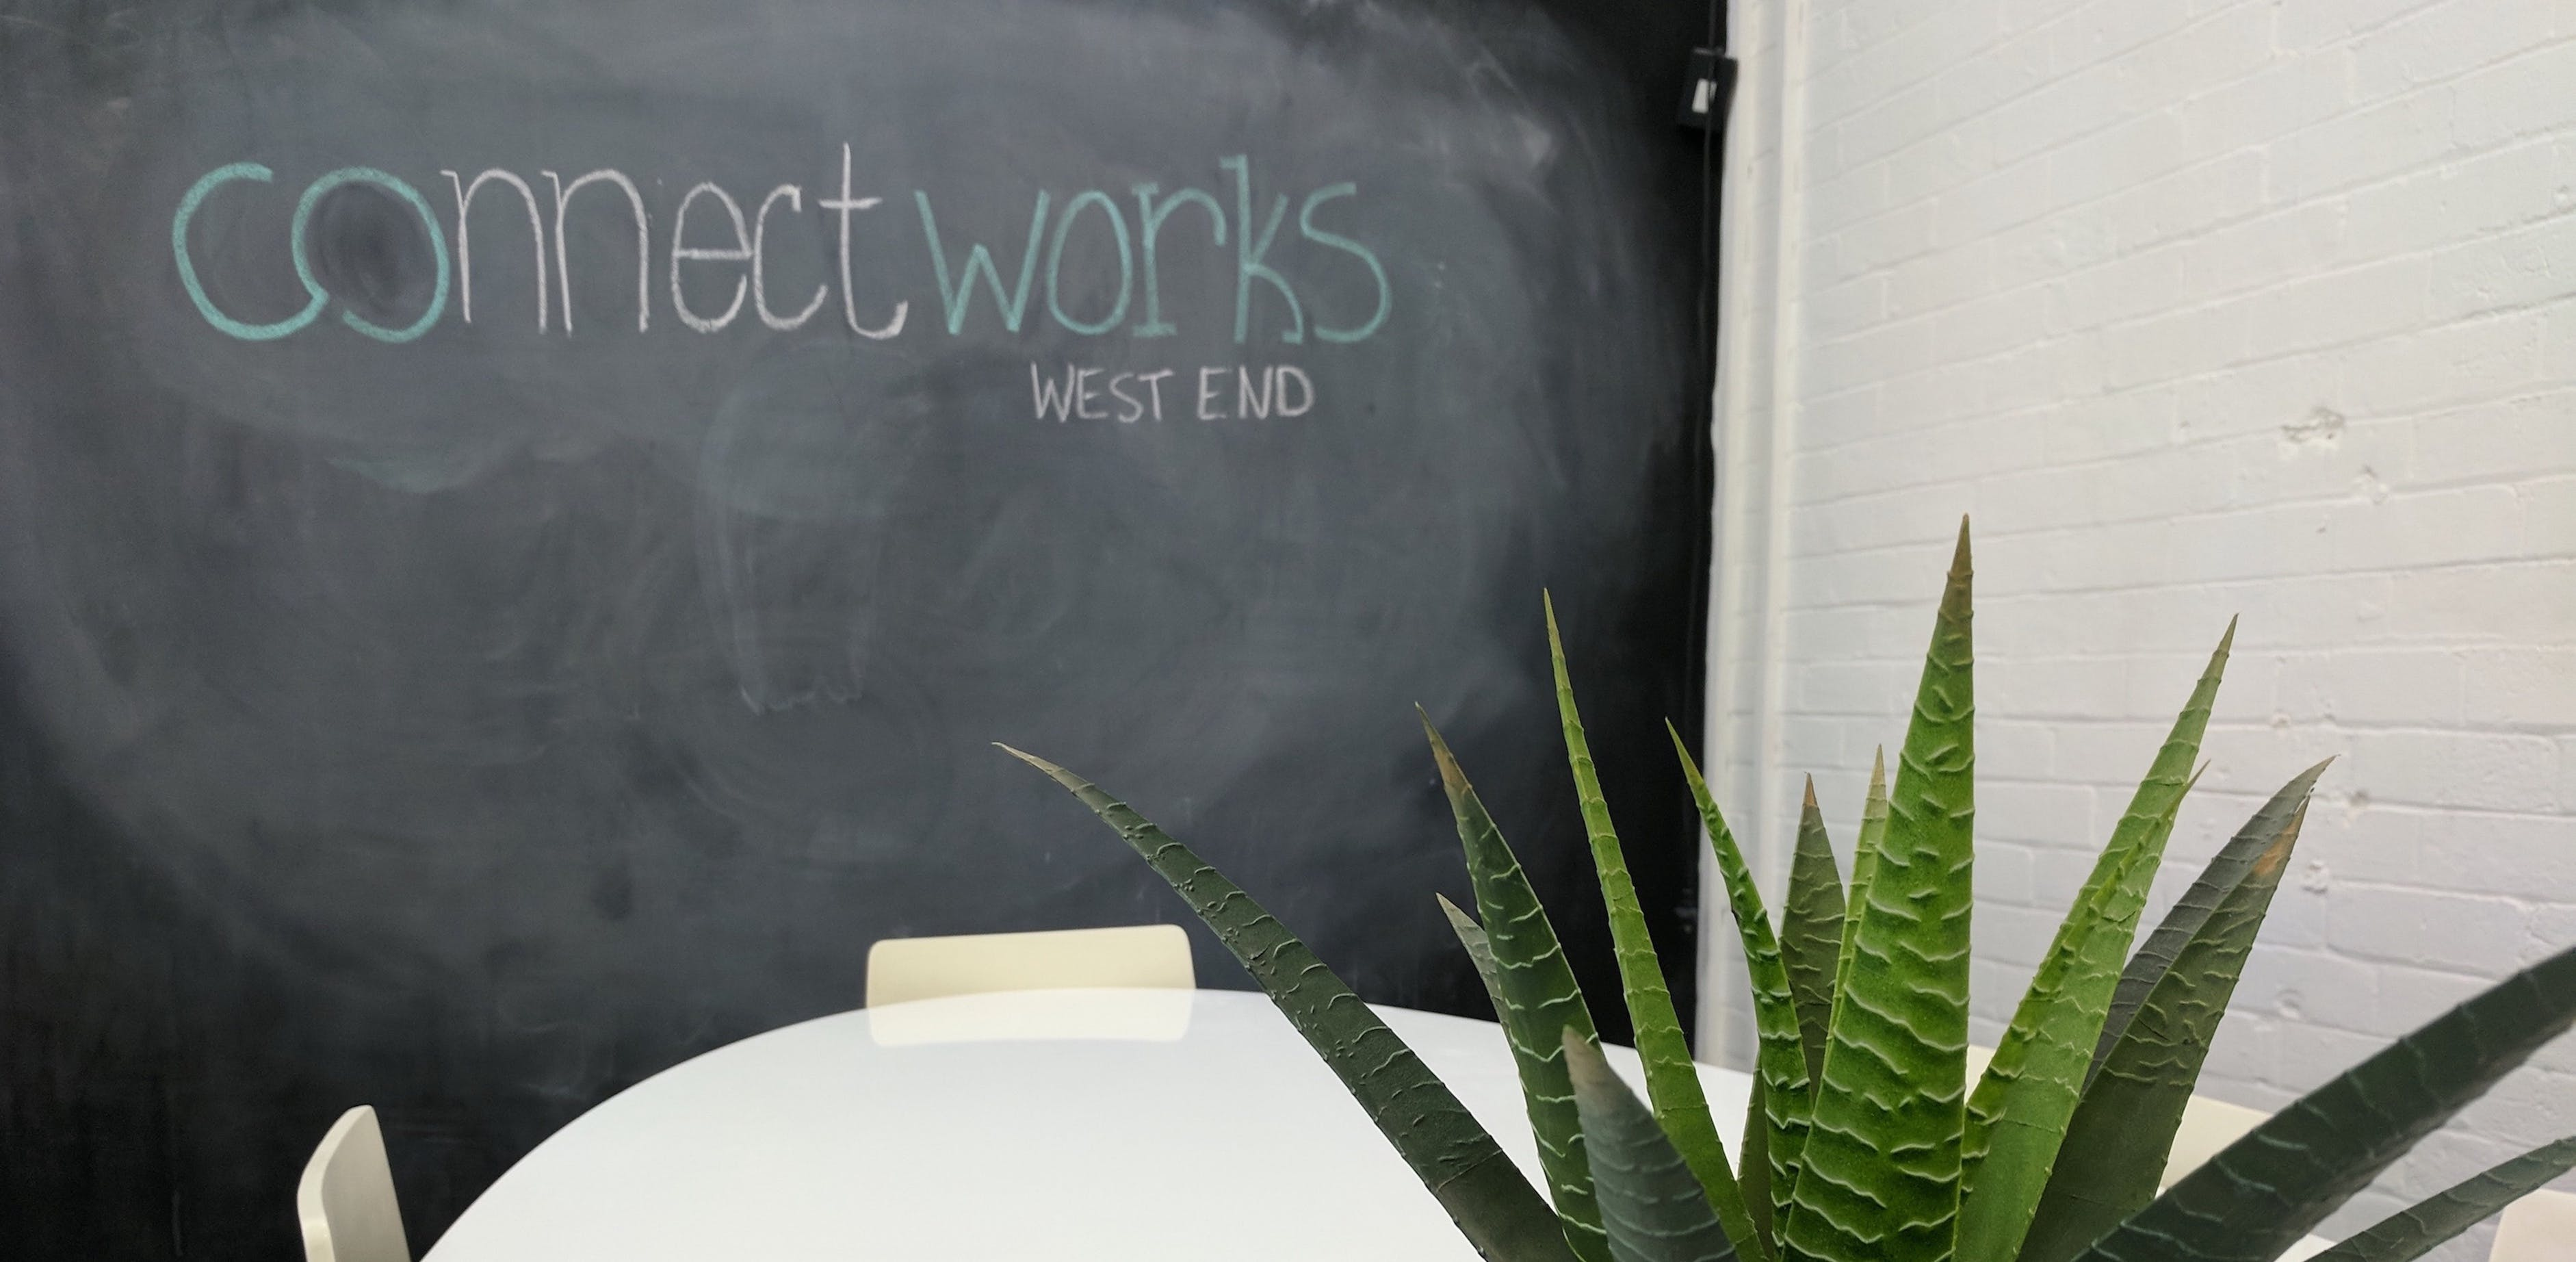 Co-working in the heart of the west end of Brisbane, image 1